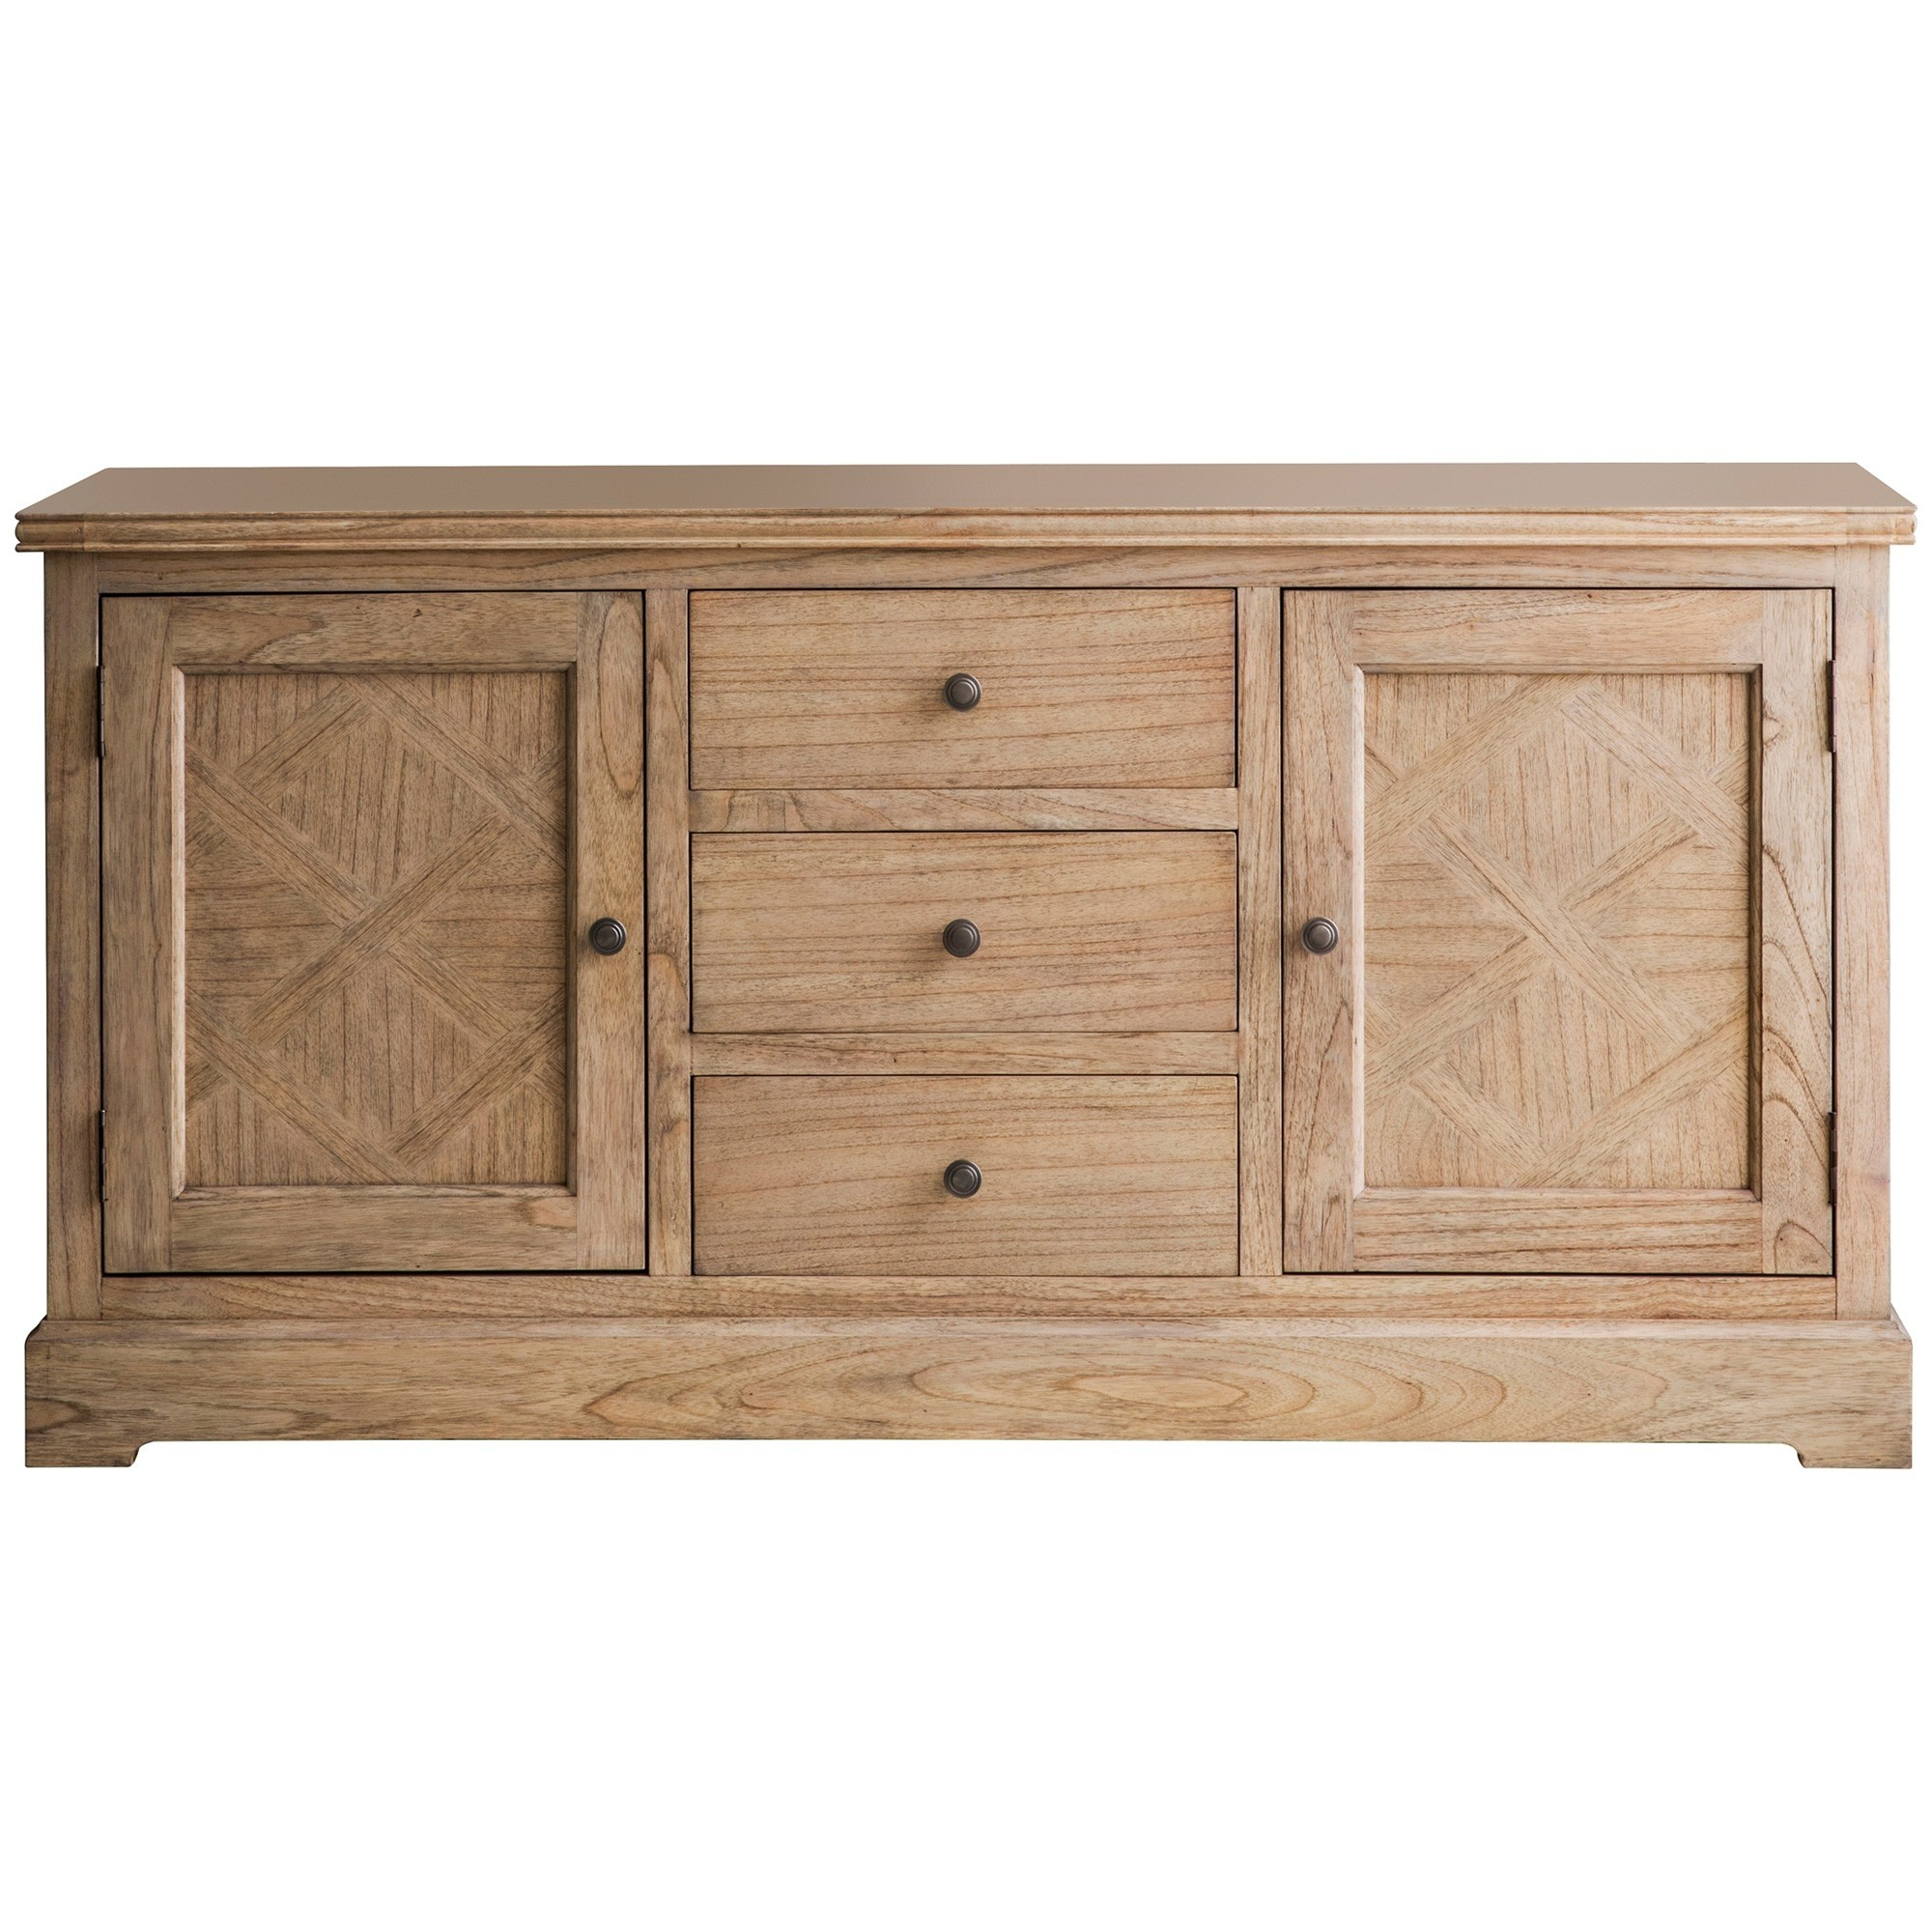 Mirren Solid Mindi Wood Sideboard